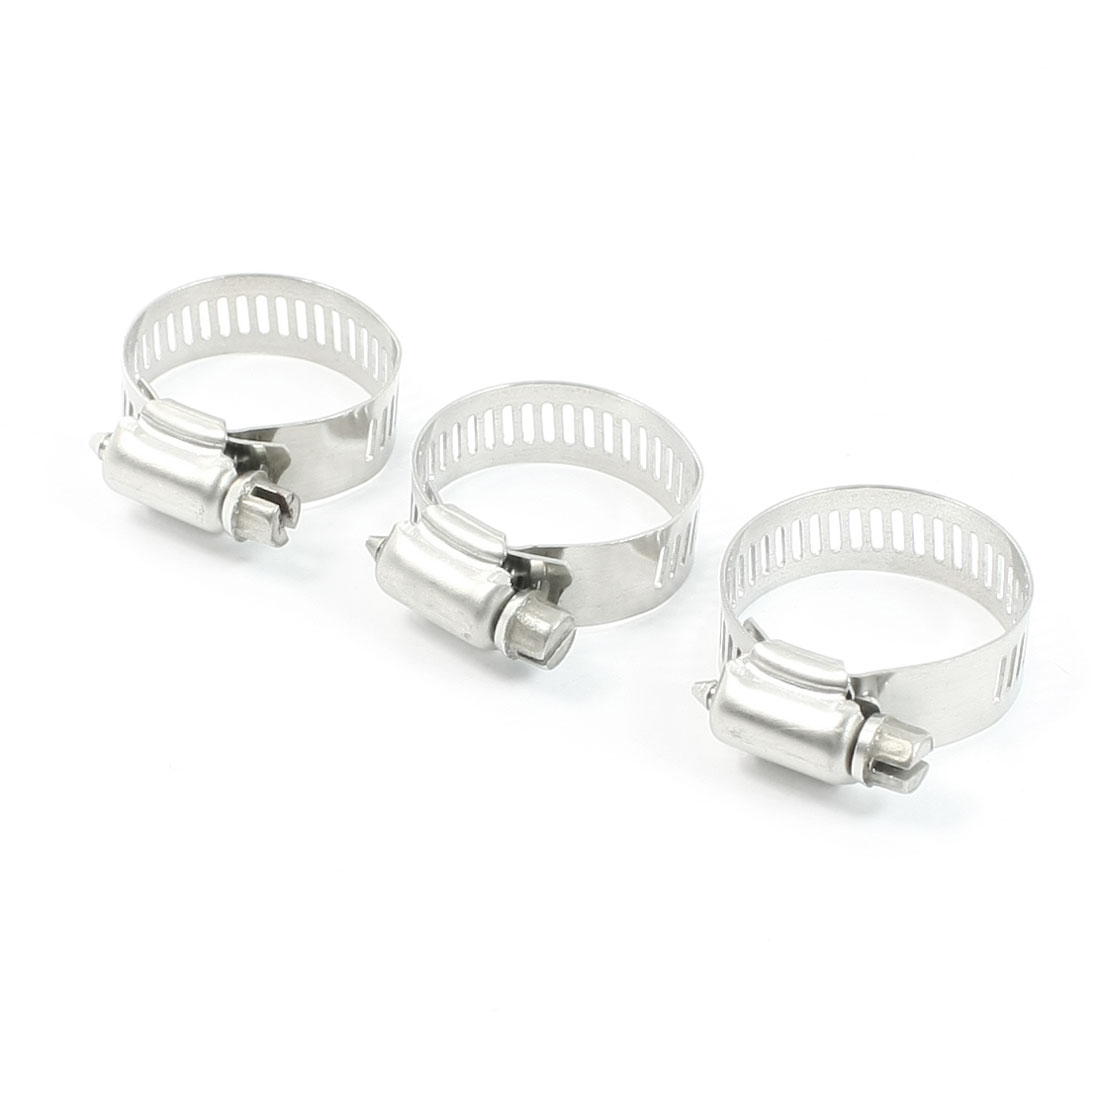 3 Pcs Hollow Out Hardware Parts 12mm Wide Hose Pipe Fastener 18-32mm Clamps Hoop